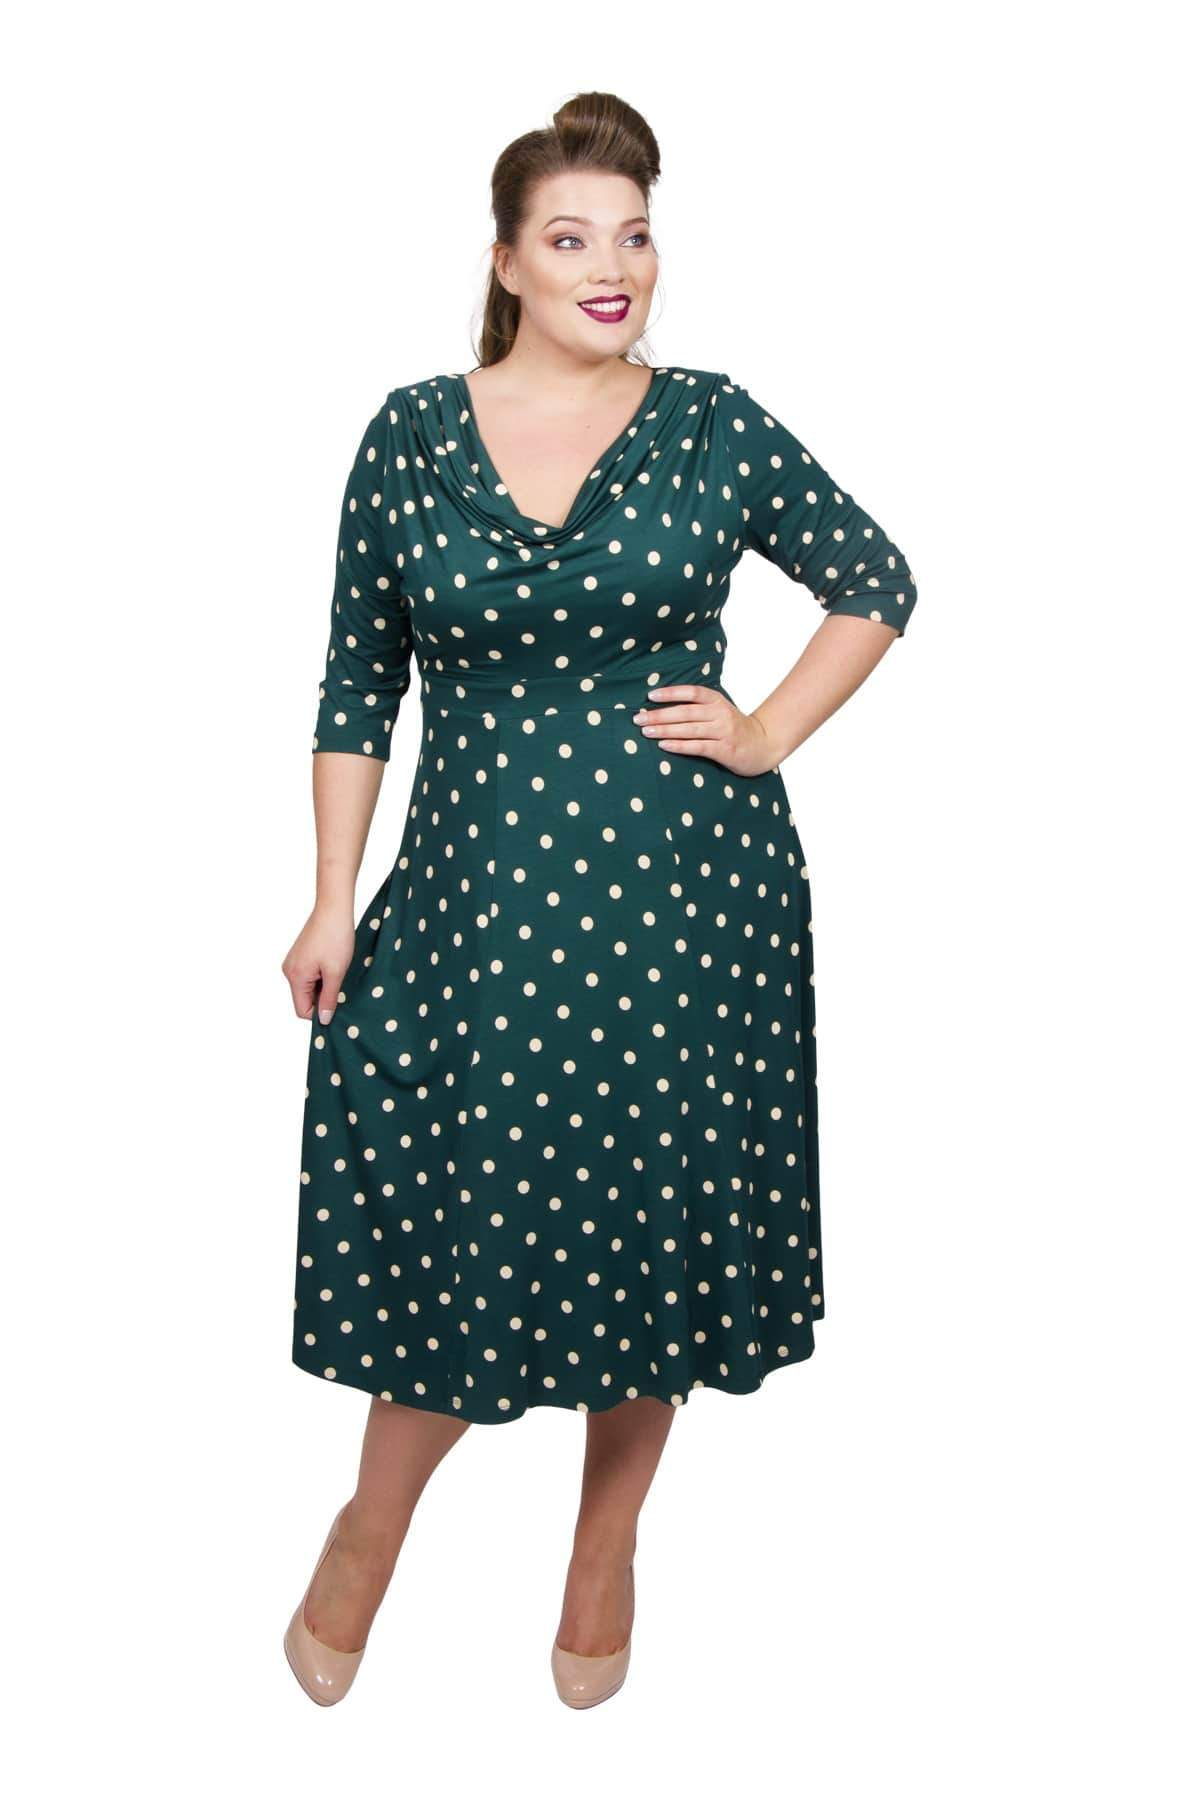 1940s Dresses and Clothing UK | 40s Shoes UK Lollidot Cowl Neck 40s Dress - GreenWhite  12 £60.00 AT vintagedancer.com